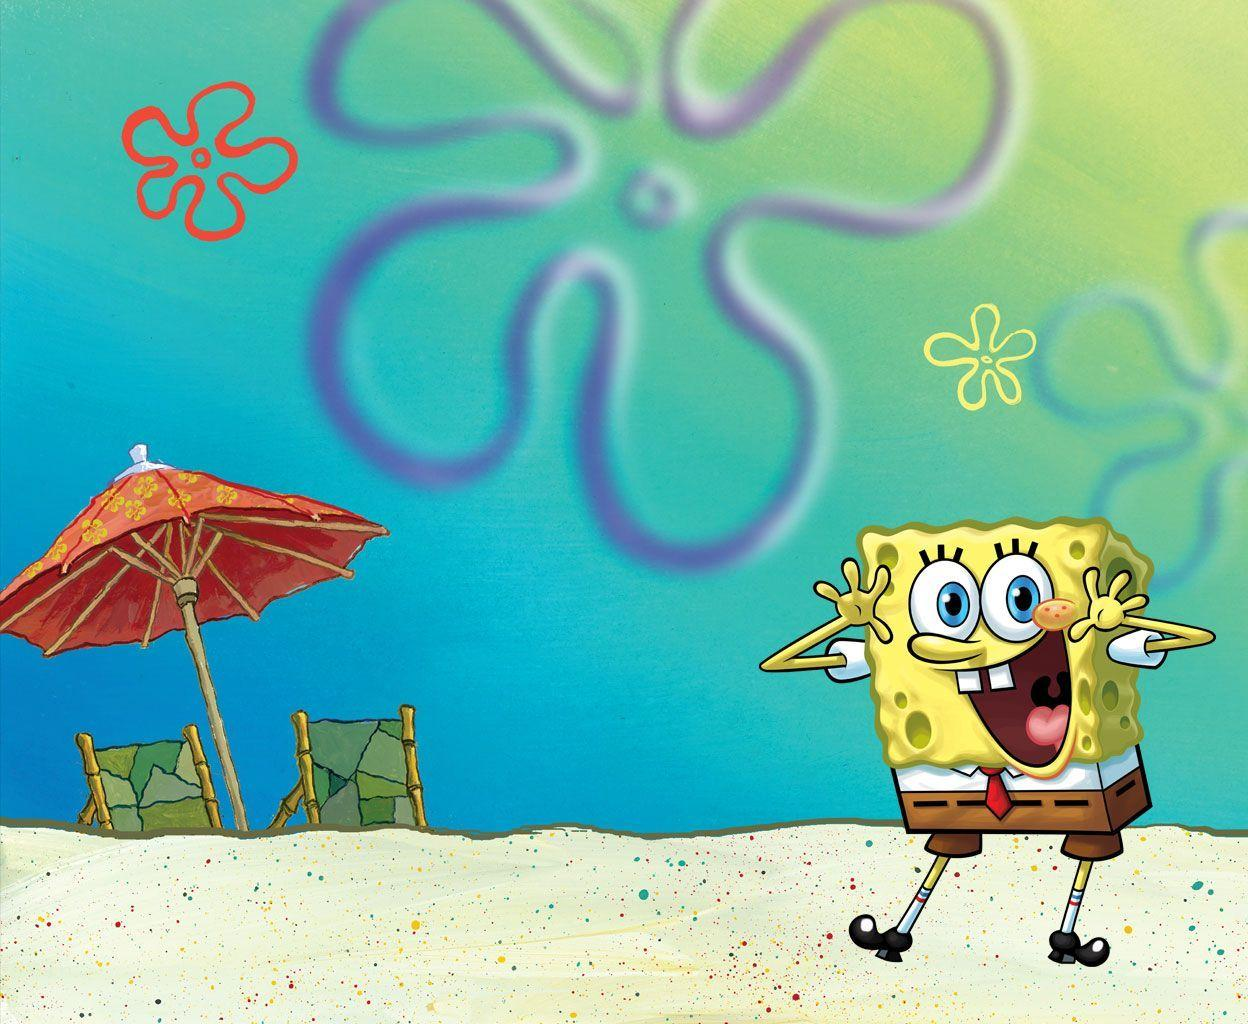 Hawaii Coloring Pages Photo additionally Sponge Bob Coloring Pictures moreover Fbfa Eb F Cb Ce A B together with Spongebob Squarepants moreover Legend Of Korra Printable Coloring Page. on printable spongebob games